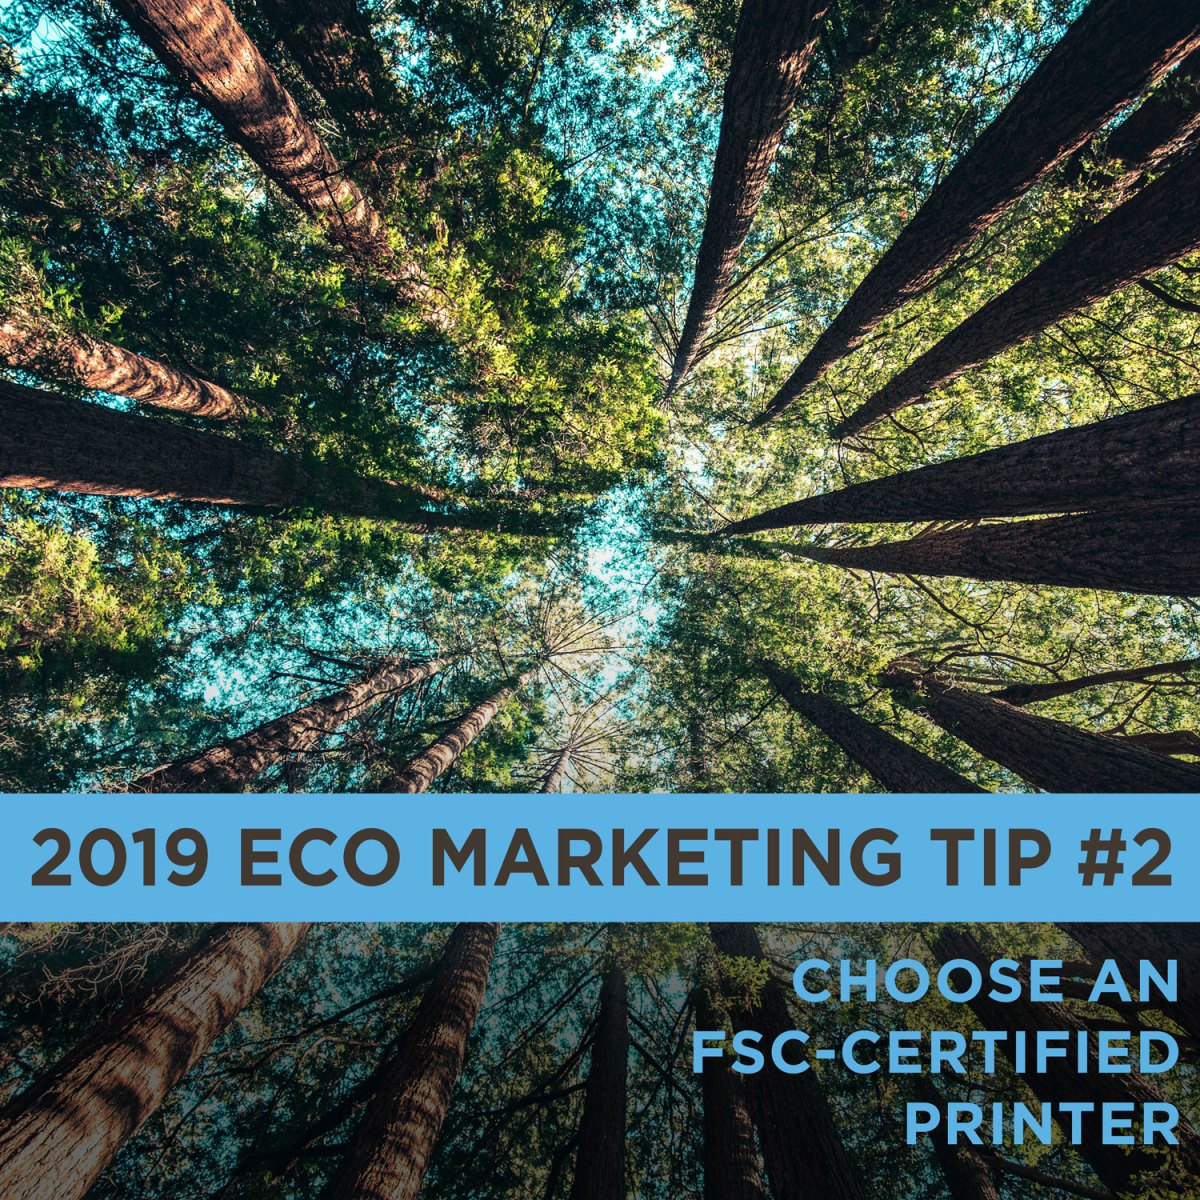 Eco Marketing Tip 2 is to choose an FSC-certified printer